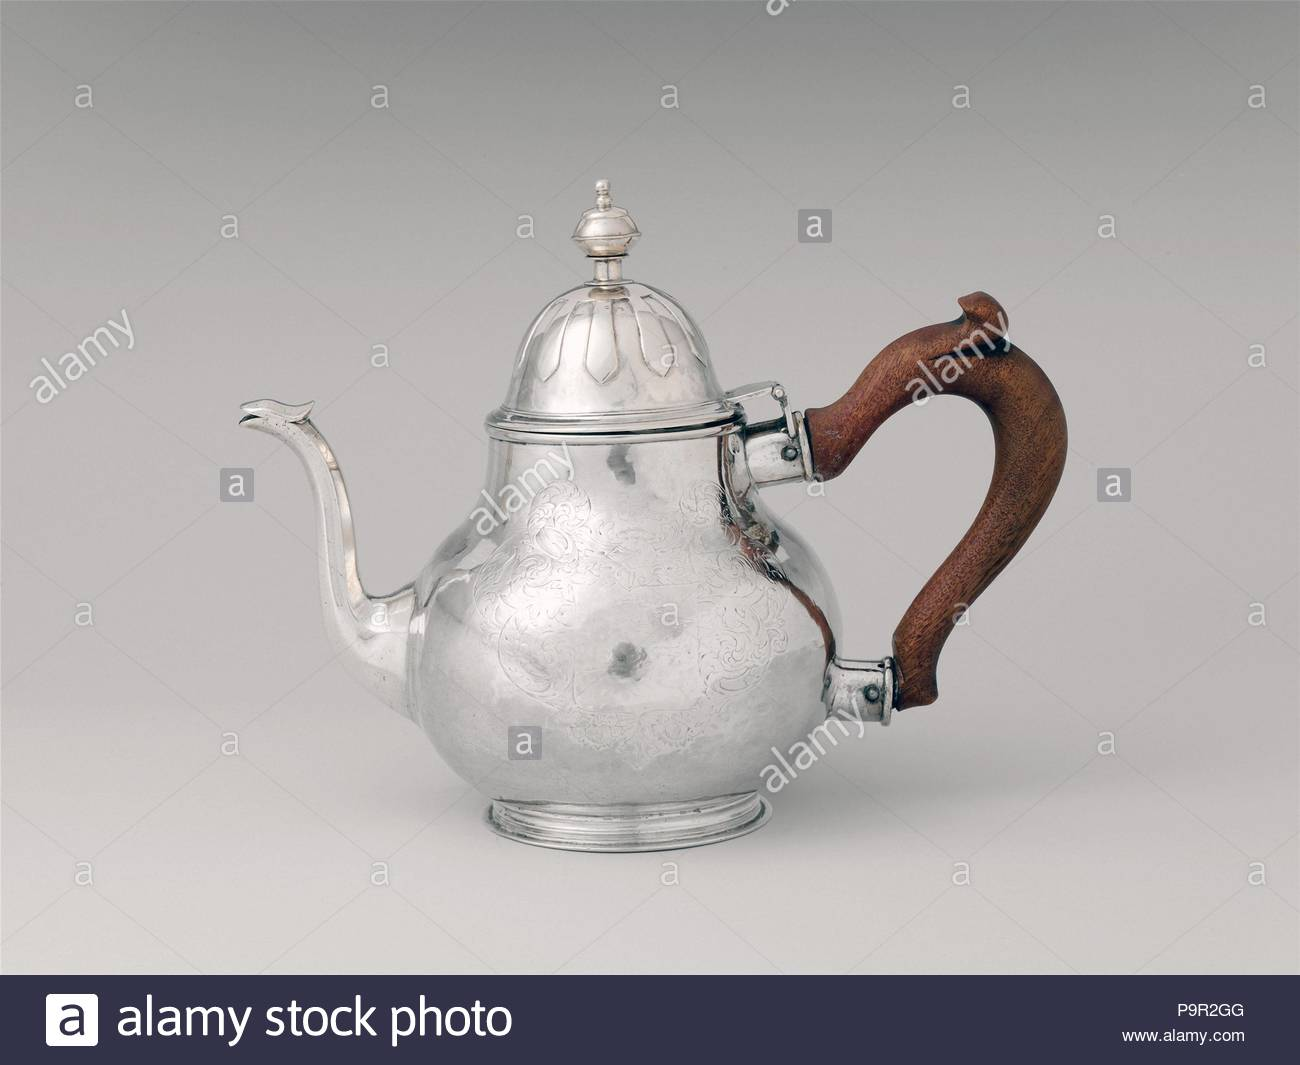 Teapot, ca. 1720, Made in New York, New York, United States, American, Silver, 7 3/16 × 9 5/16 in., 563.5g, 4 7/8 in. (18.3 × 23.7 cm, 18 oz., 12.4 cm), Silver, Peter Van Dyck (1684–1750). - Stock Image